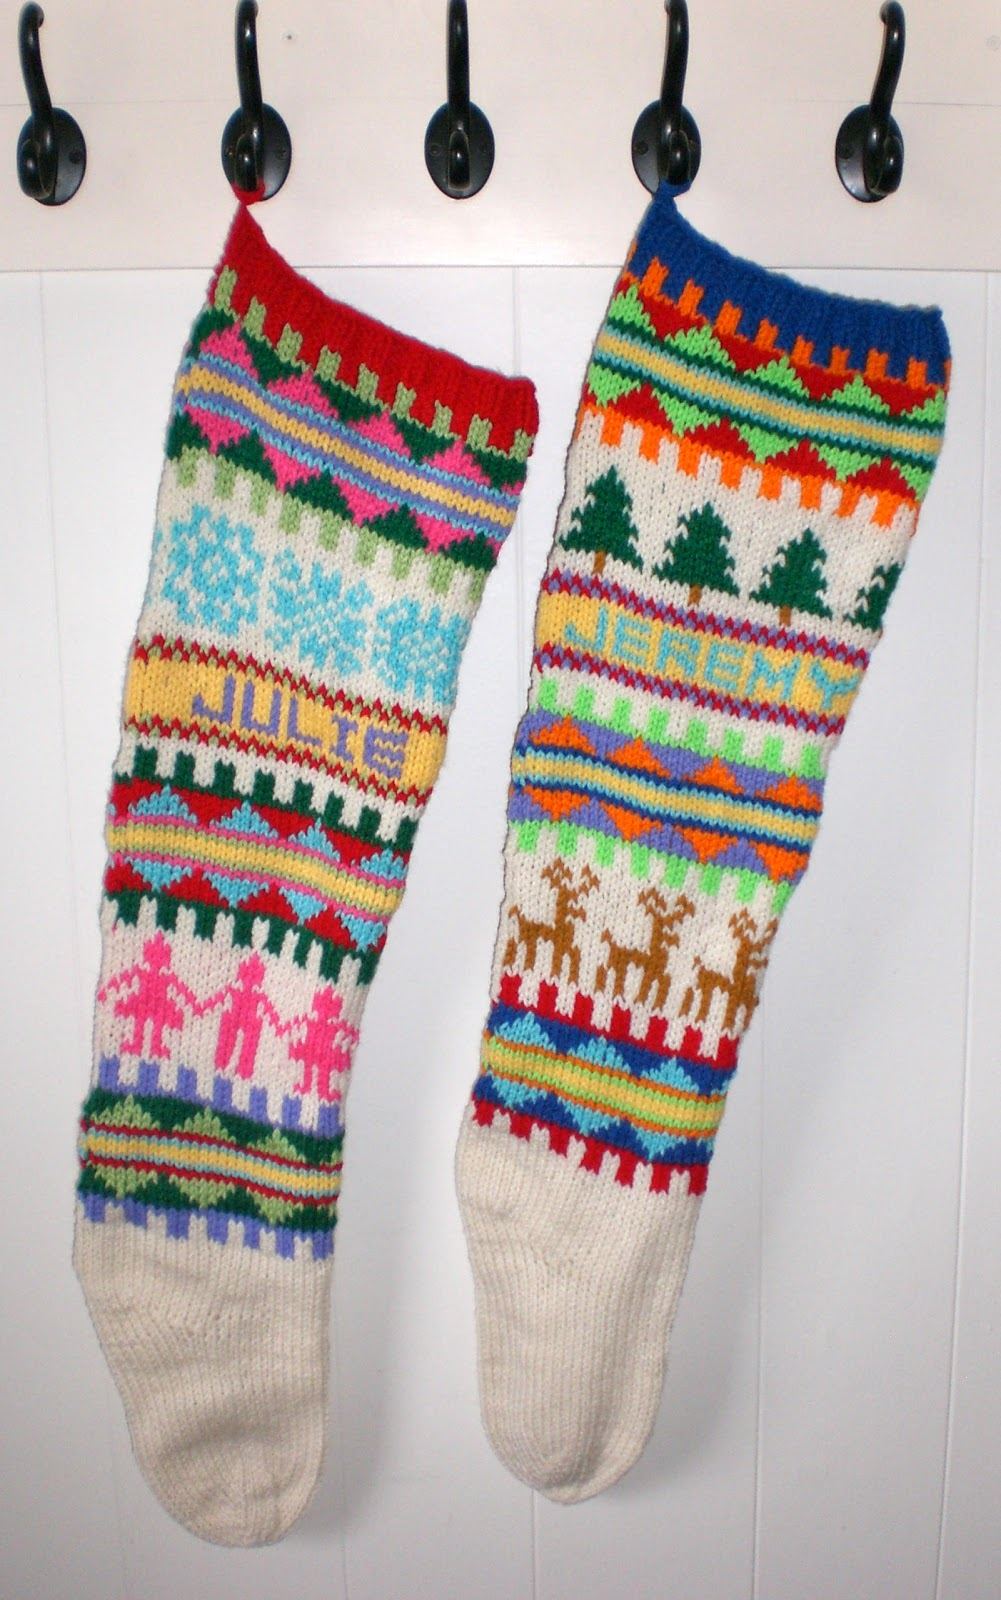 Knit Christmas Stockings Patterns : Ranger 911: Free Scandinavian Knitting Pattern